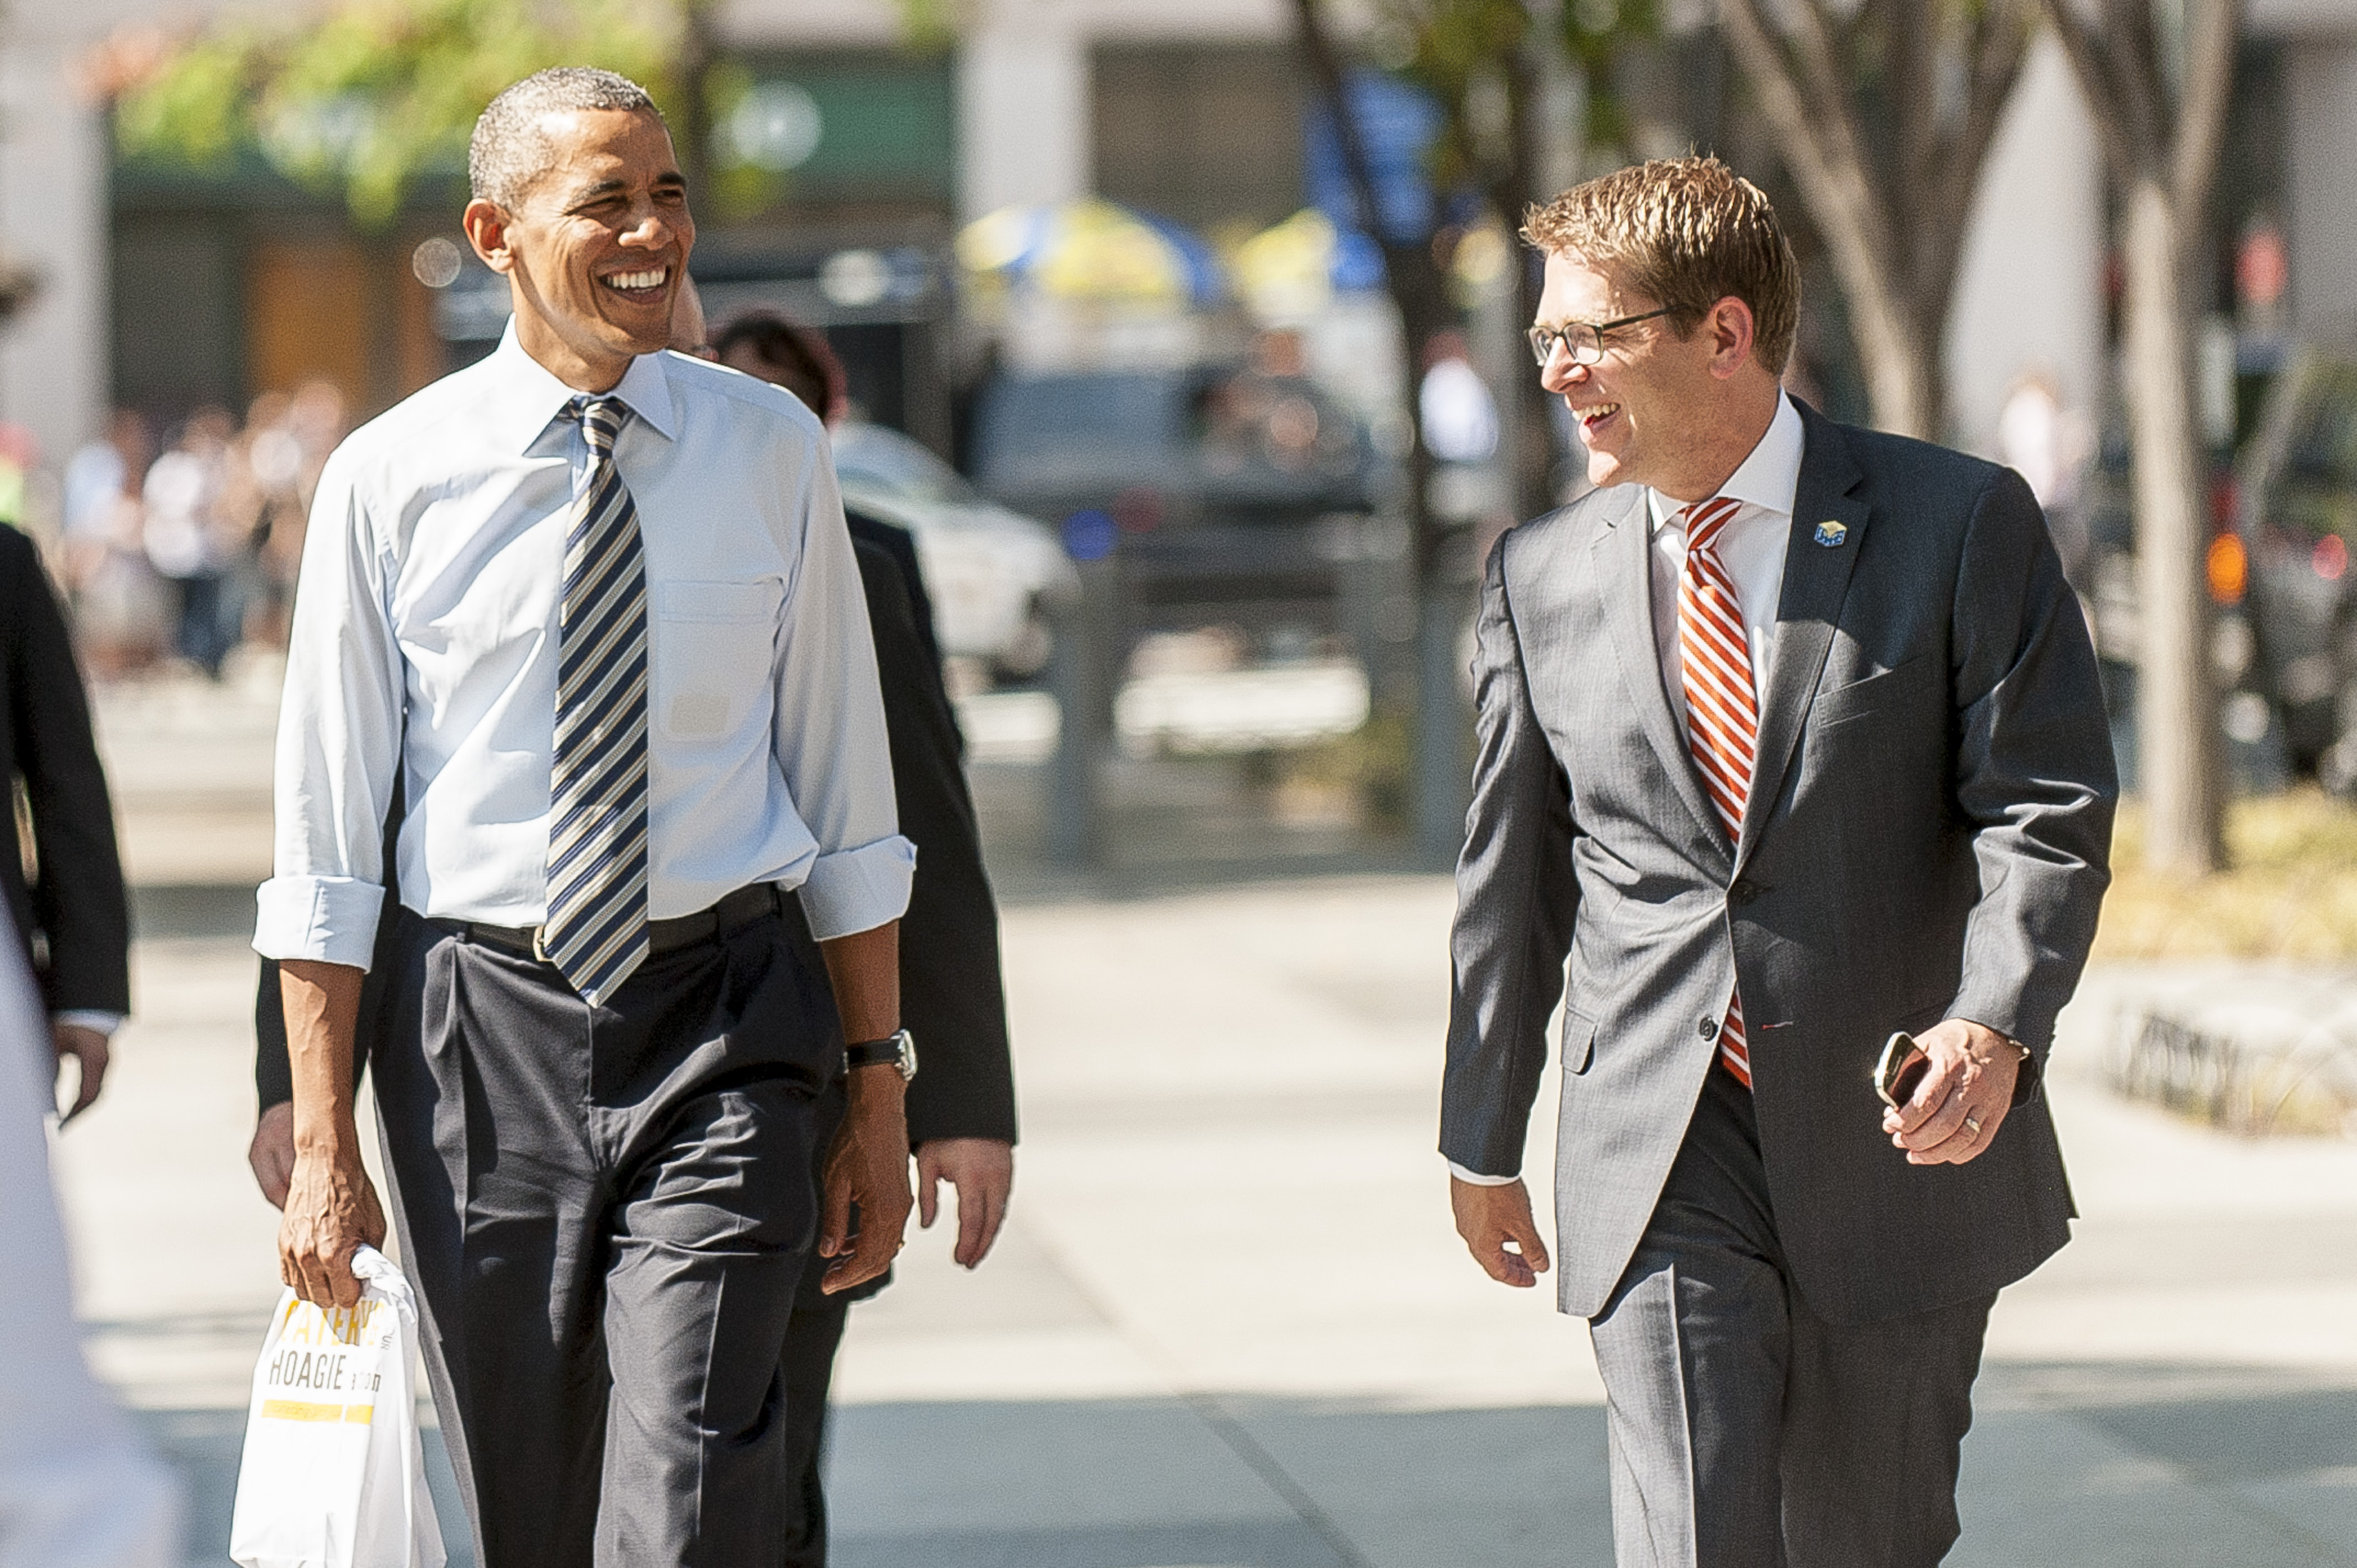 United States President Barack Obama and Press Secretary Jay Carney walk back to the White House from nearby Taylor Gourmet Deli on Pennsylvania Avenue after picking up lunch on Oct. 4, 2013 in Washington.